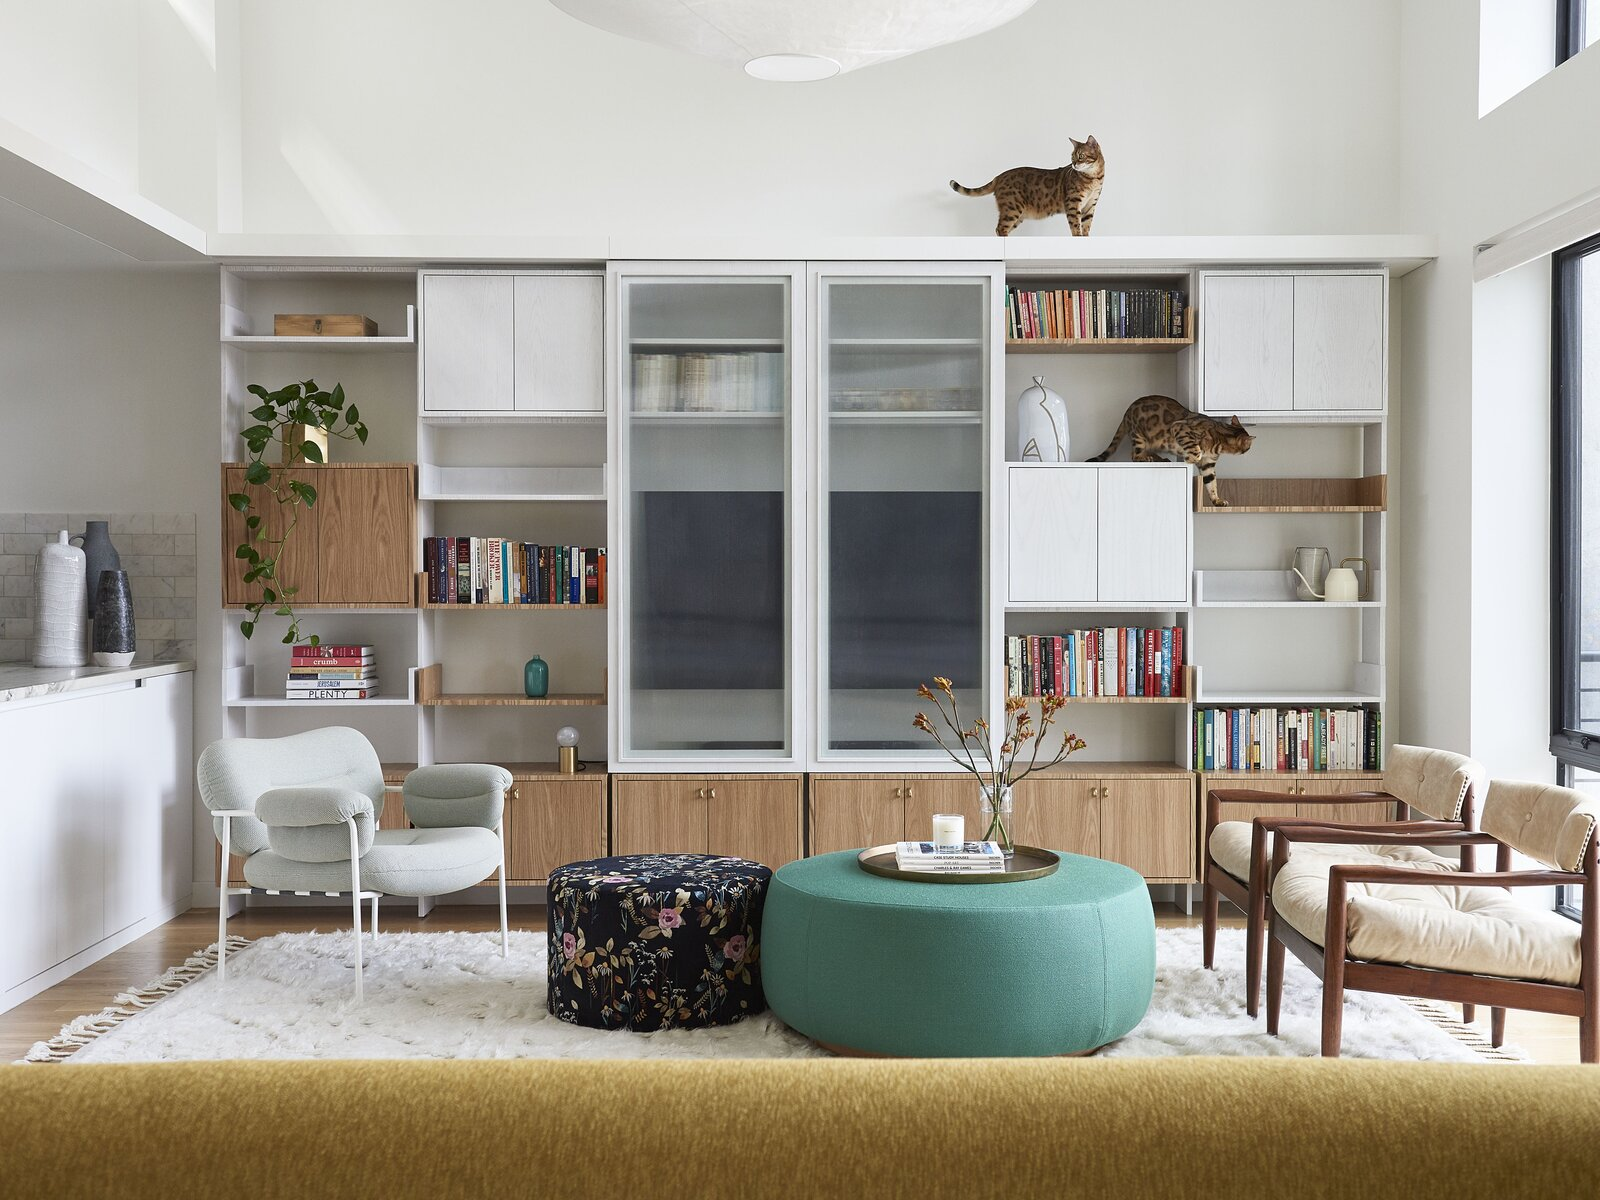 Contemporary furnishings from Muuto and Matter, as well as vintage pieces by Adrian Pearsall, add splashes of color to the couple's cat-friendly living room. The Bollo chair is by Andreas Engesvik and Fogia and the Flowerfield pouf is by Baum und Pferdgarten from Common Seating. The custom ottoman and media cabinet are by Studio Natio, while the Flotation chandelier is by Ingo Maurer.